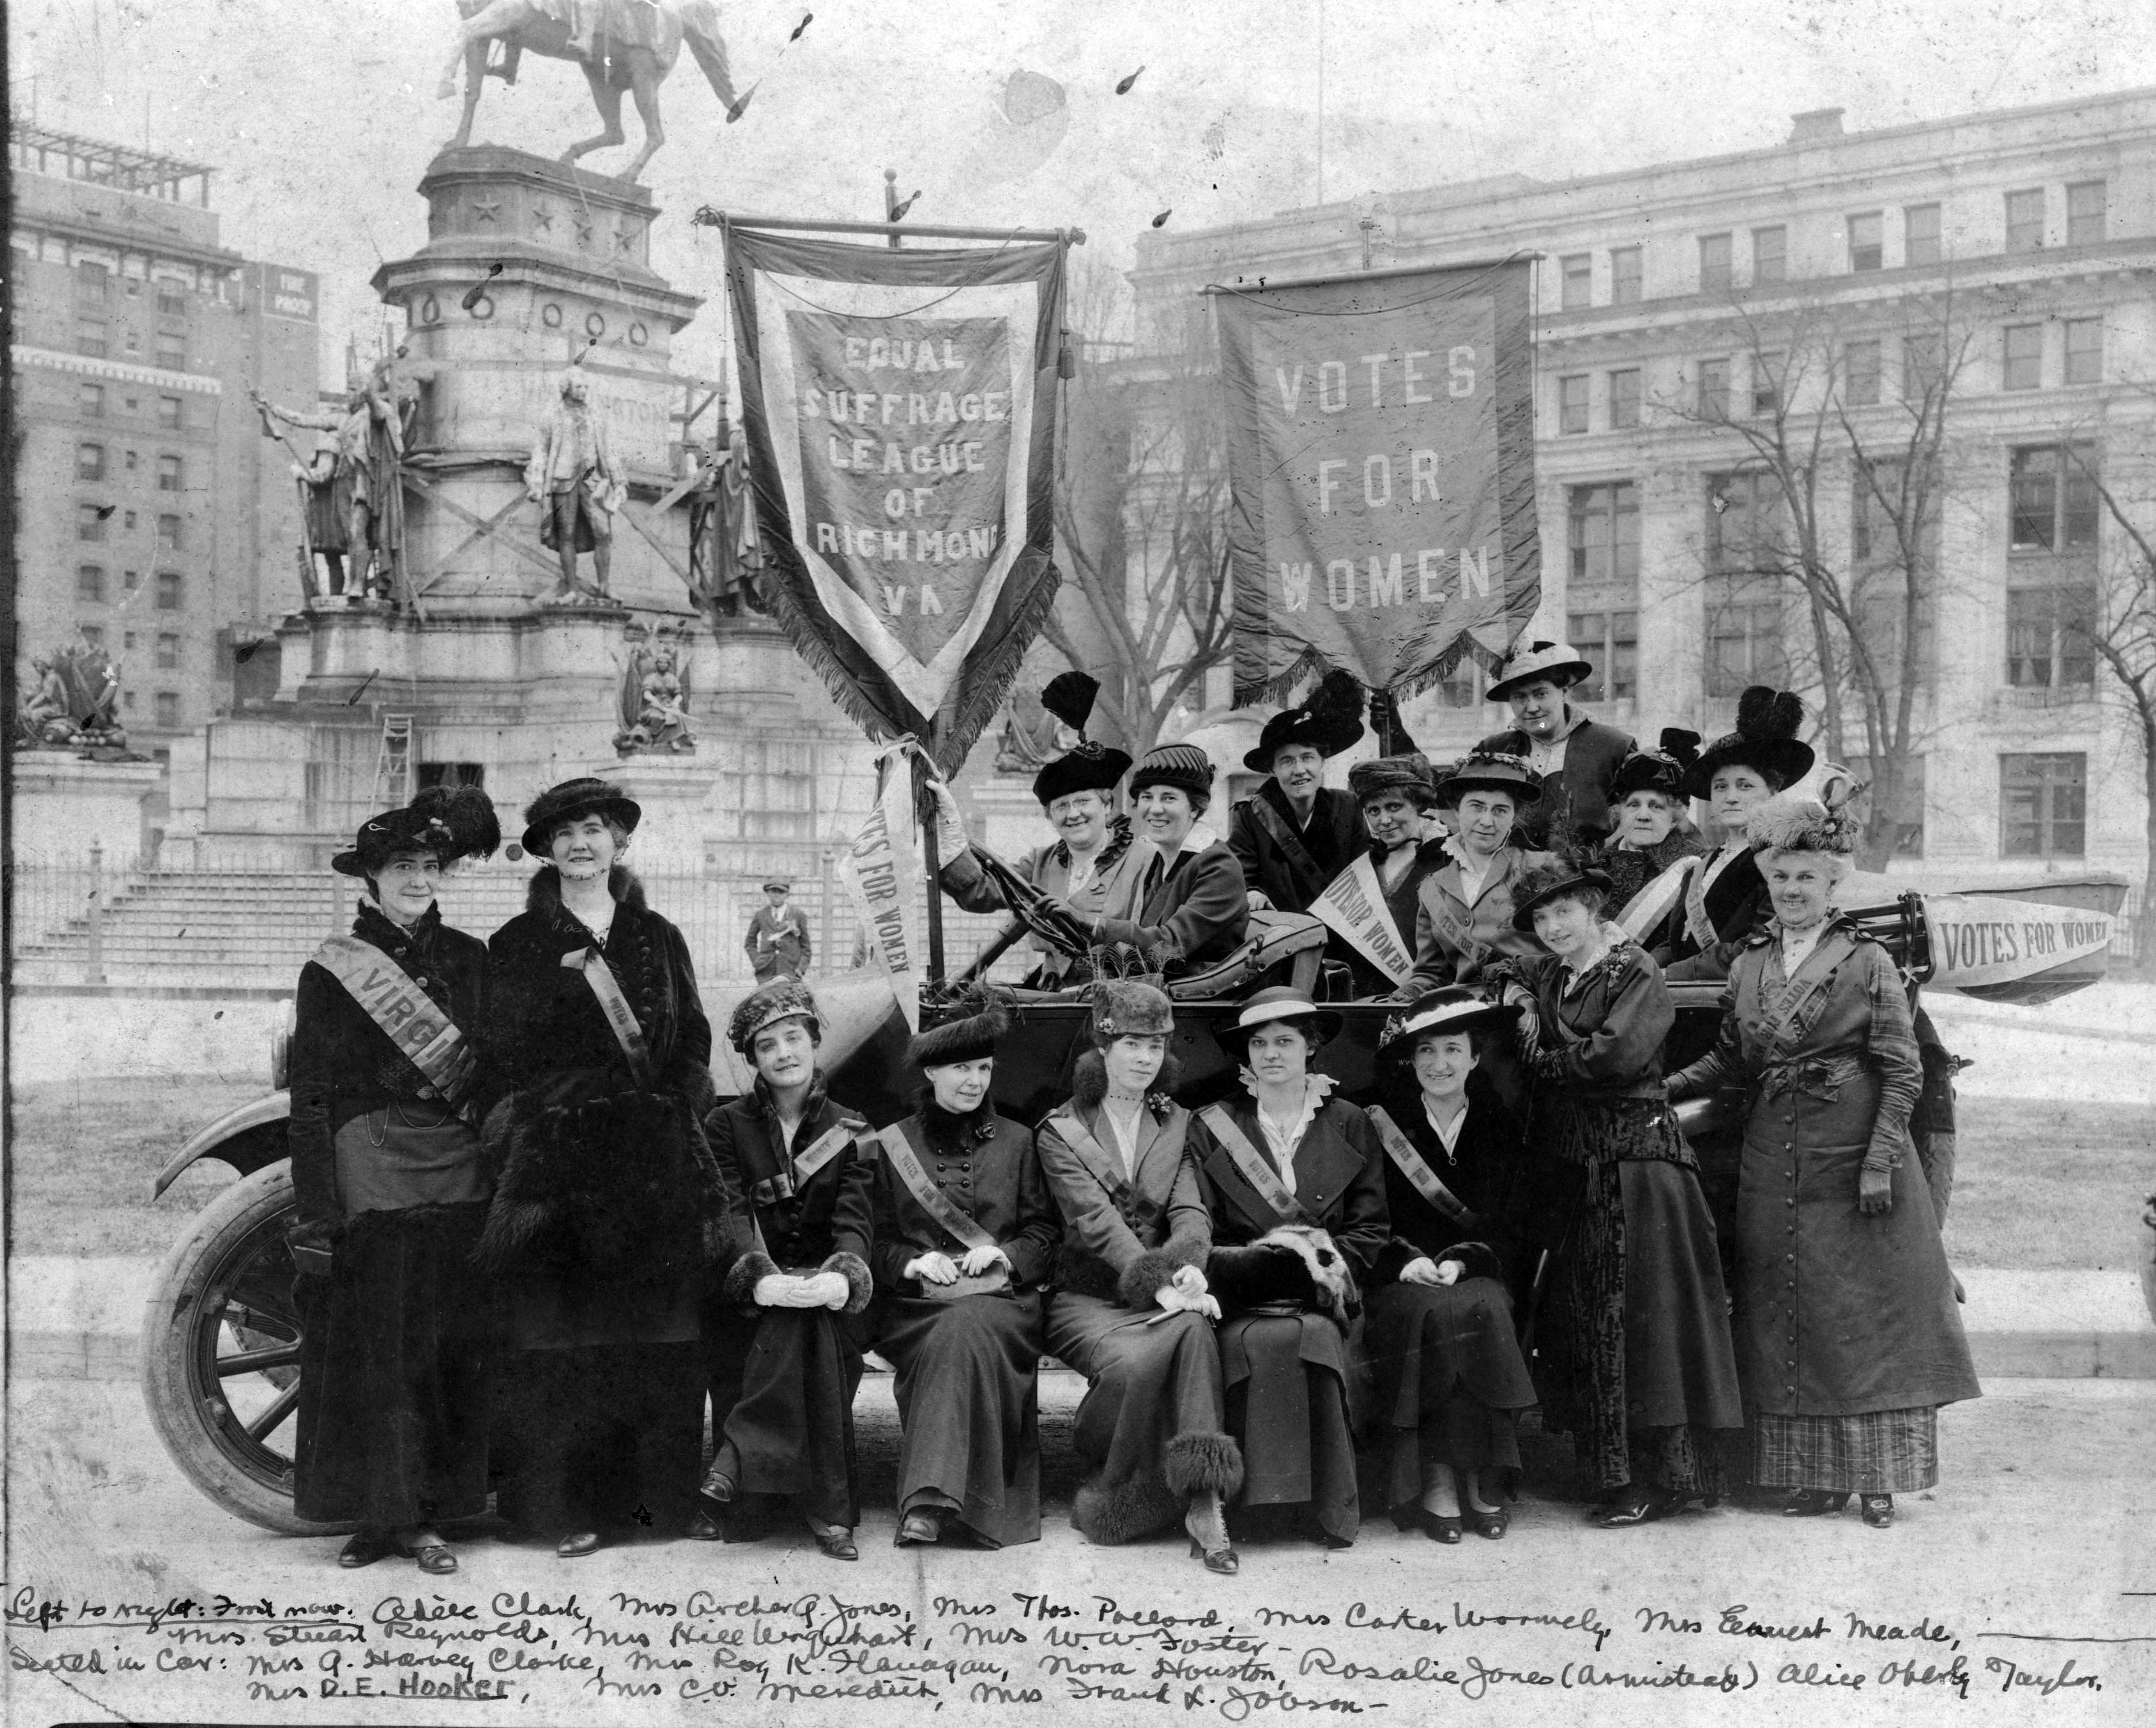 Members of the Equal Suffrage League of Virginia, Capitol Square, February 1915